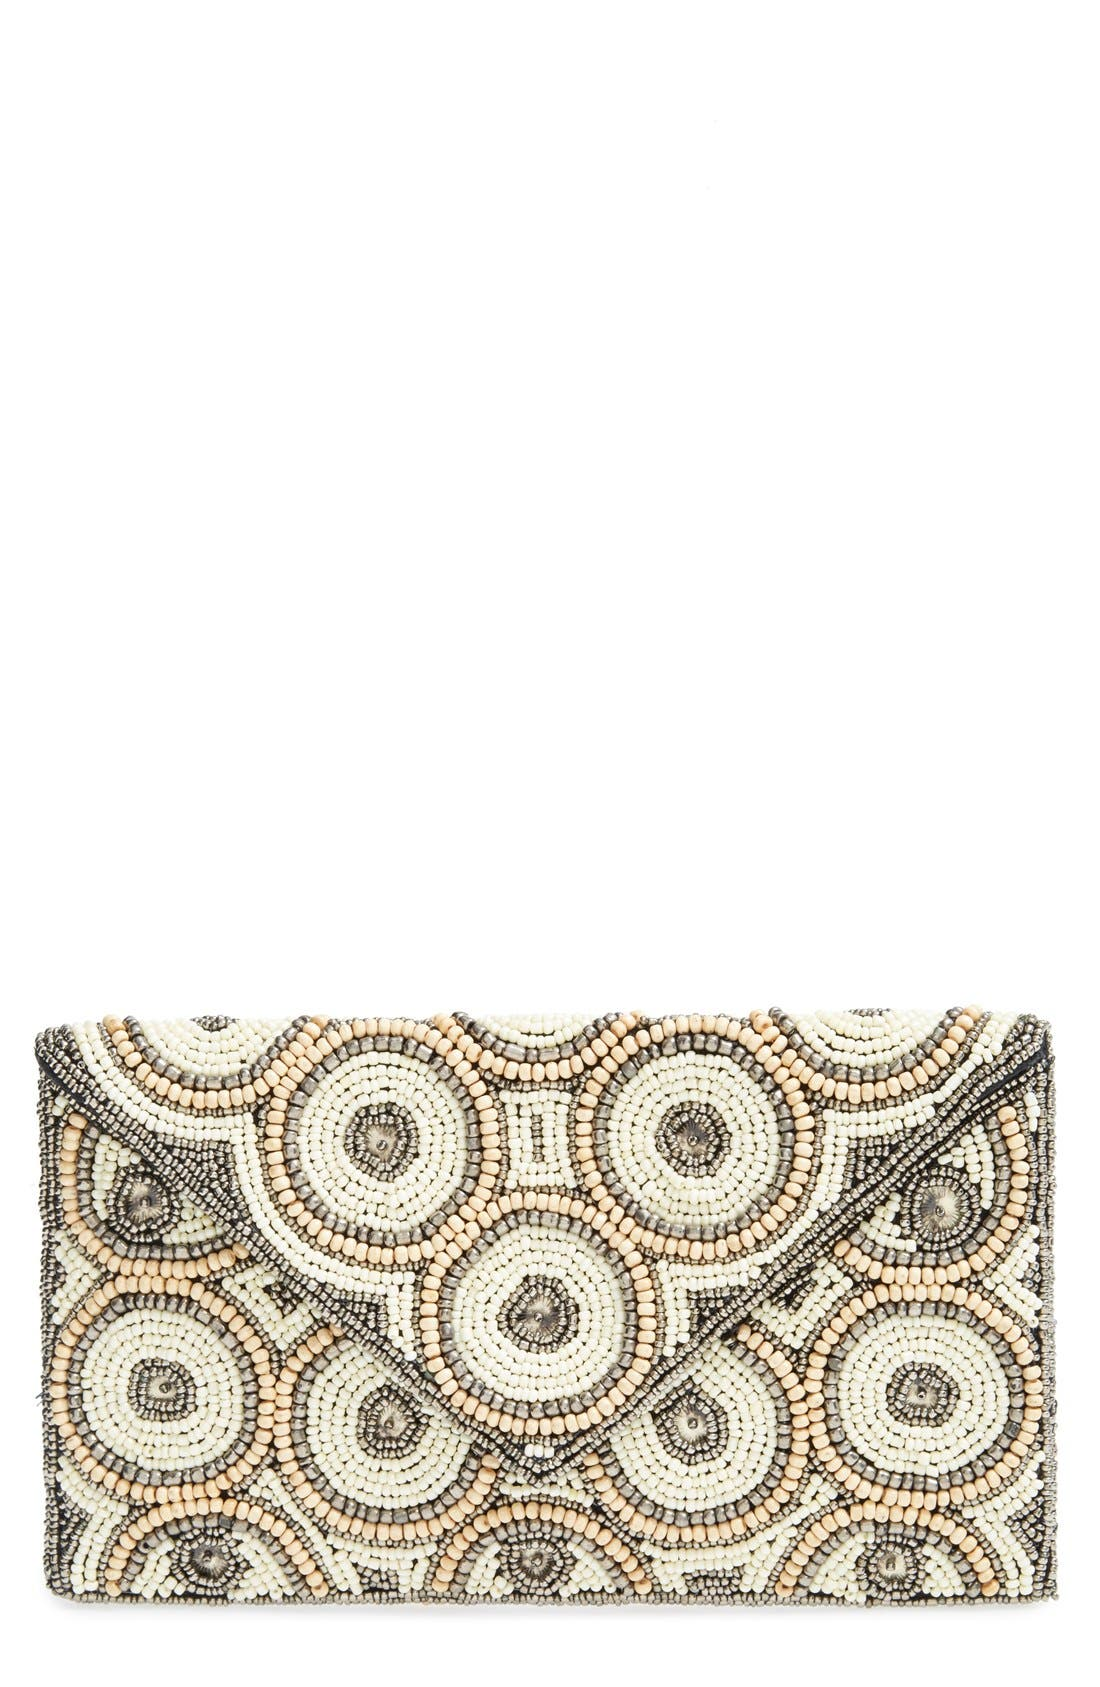 Main Image - Natasha Couture Beaded Clutch